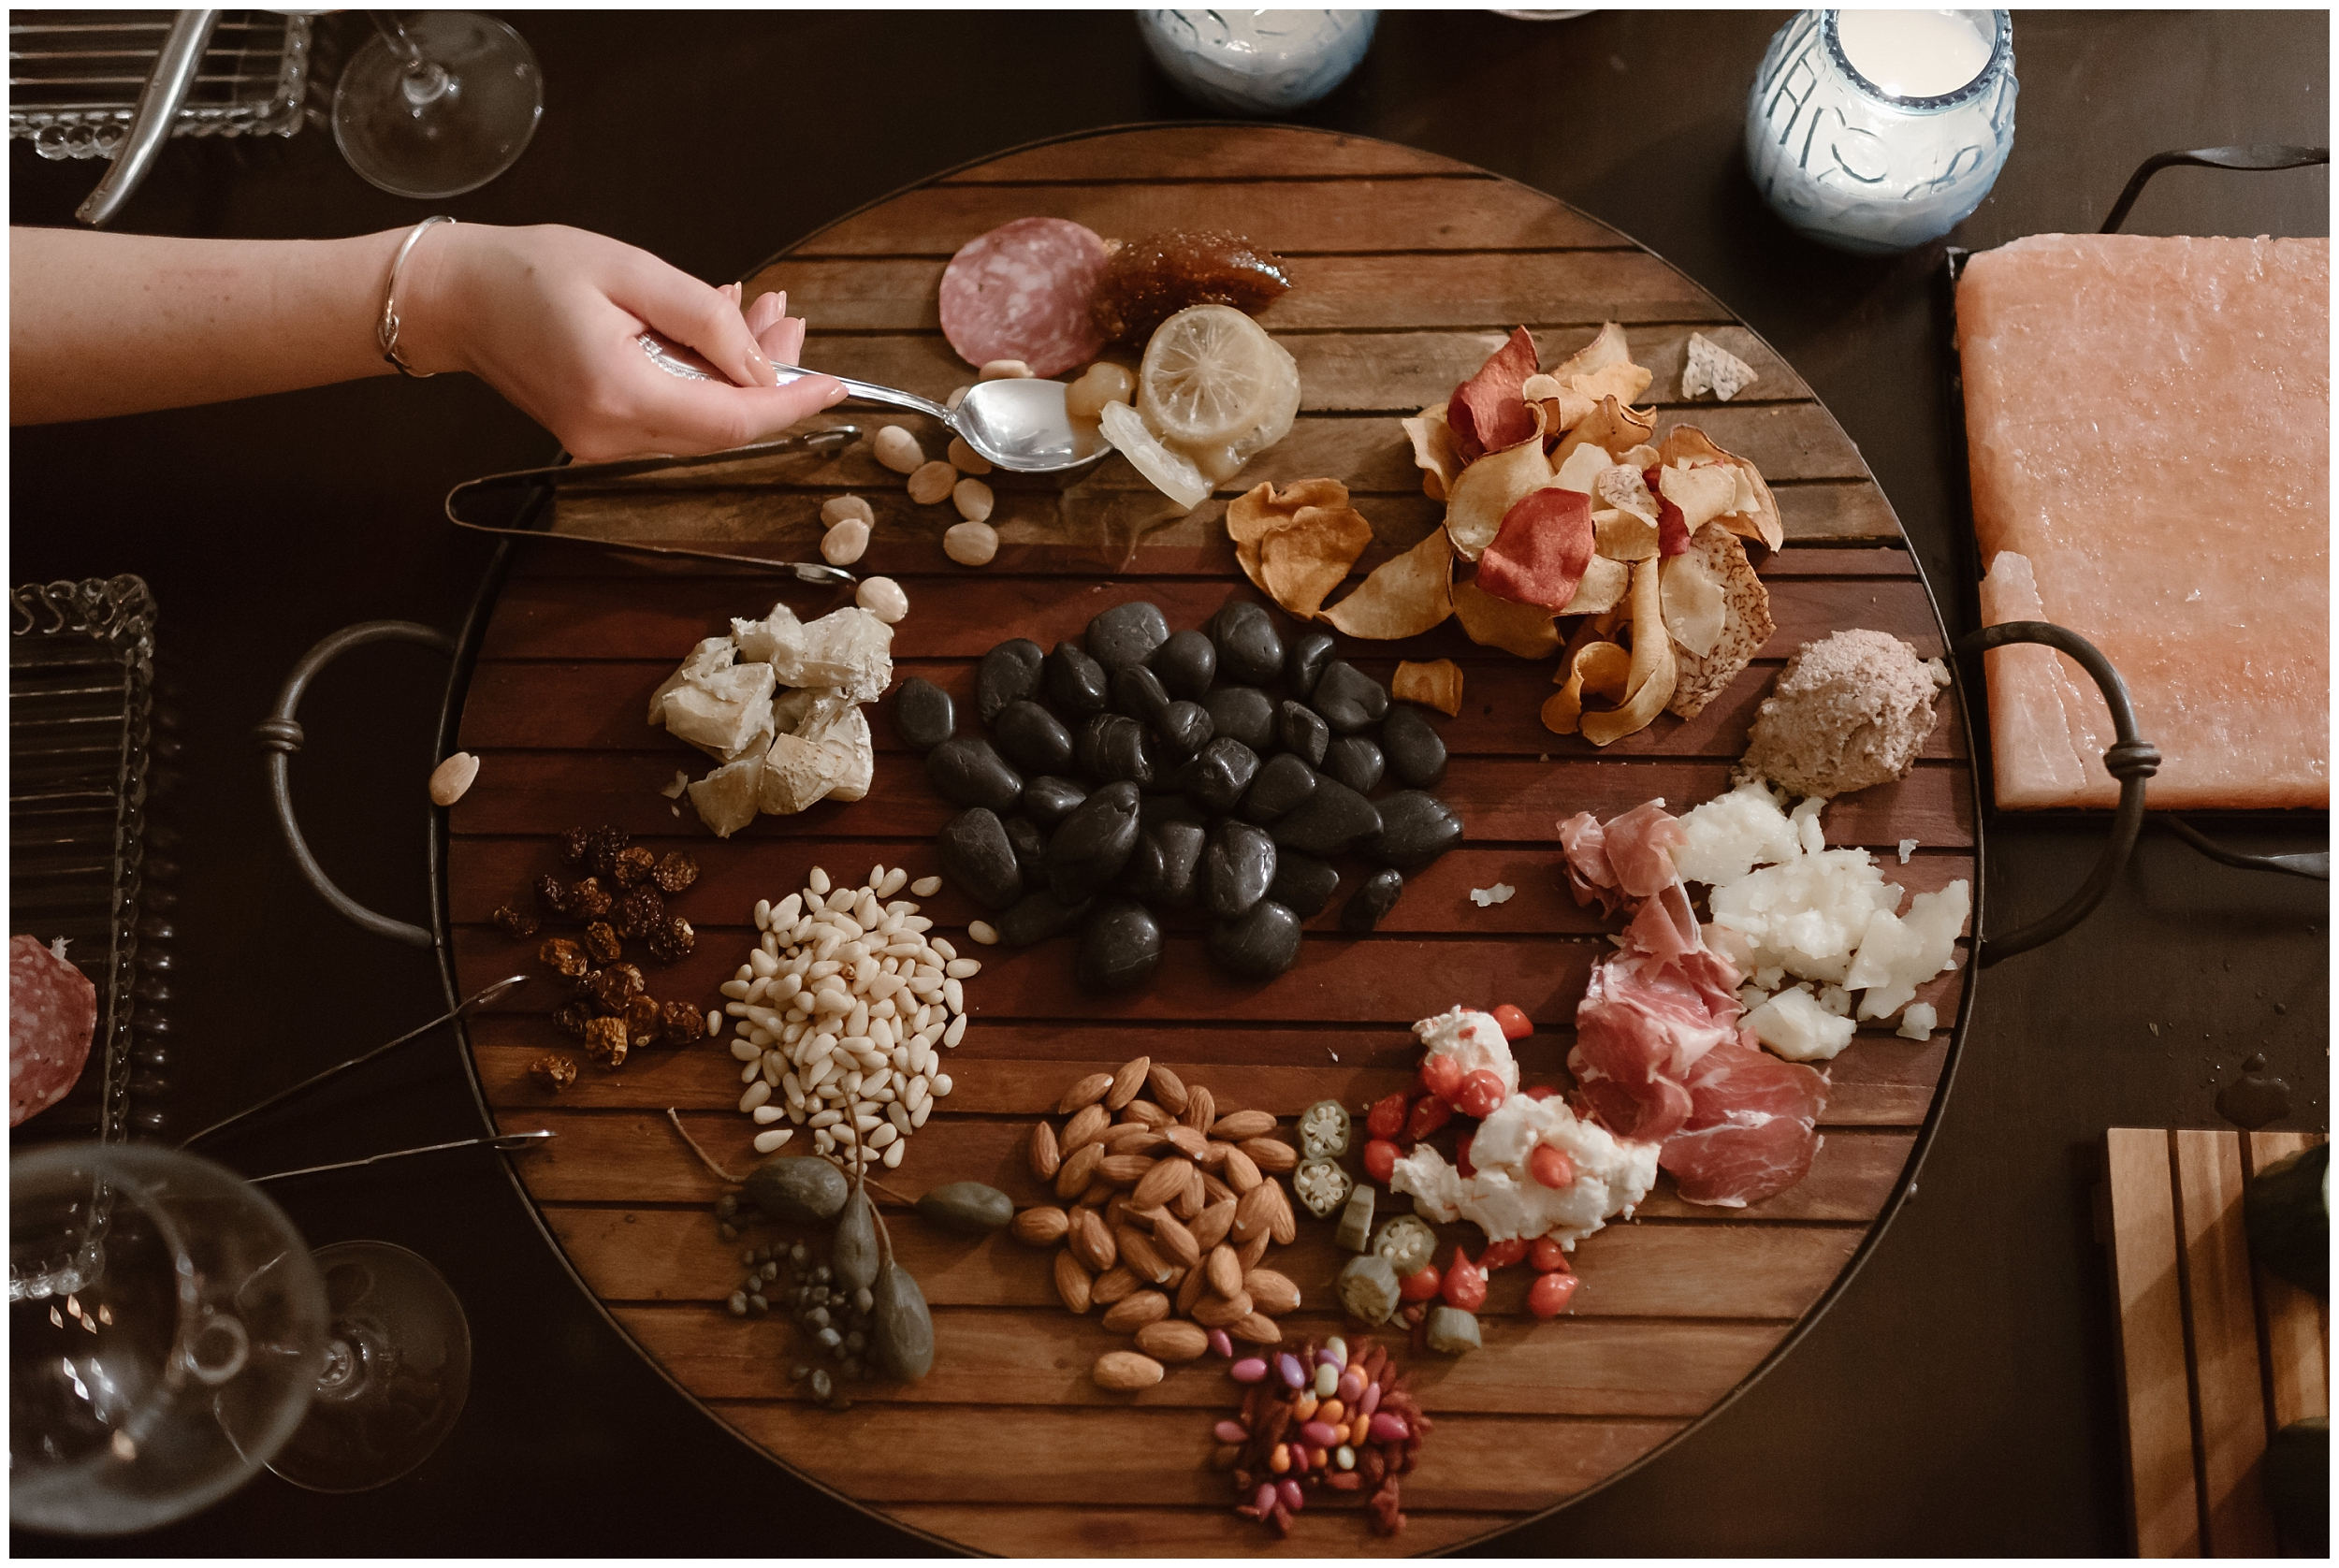 An enormous, circular wooden charcuterie board is on the table of an Ouray, Colorado Airbnb that the bride and groom are staying at. Almonds, meats, cheeses, and other gourmet items are strewn about the wooden board.These delicious food were courtesy of a professional chef the two hired as part of their reception after eloping.